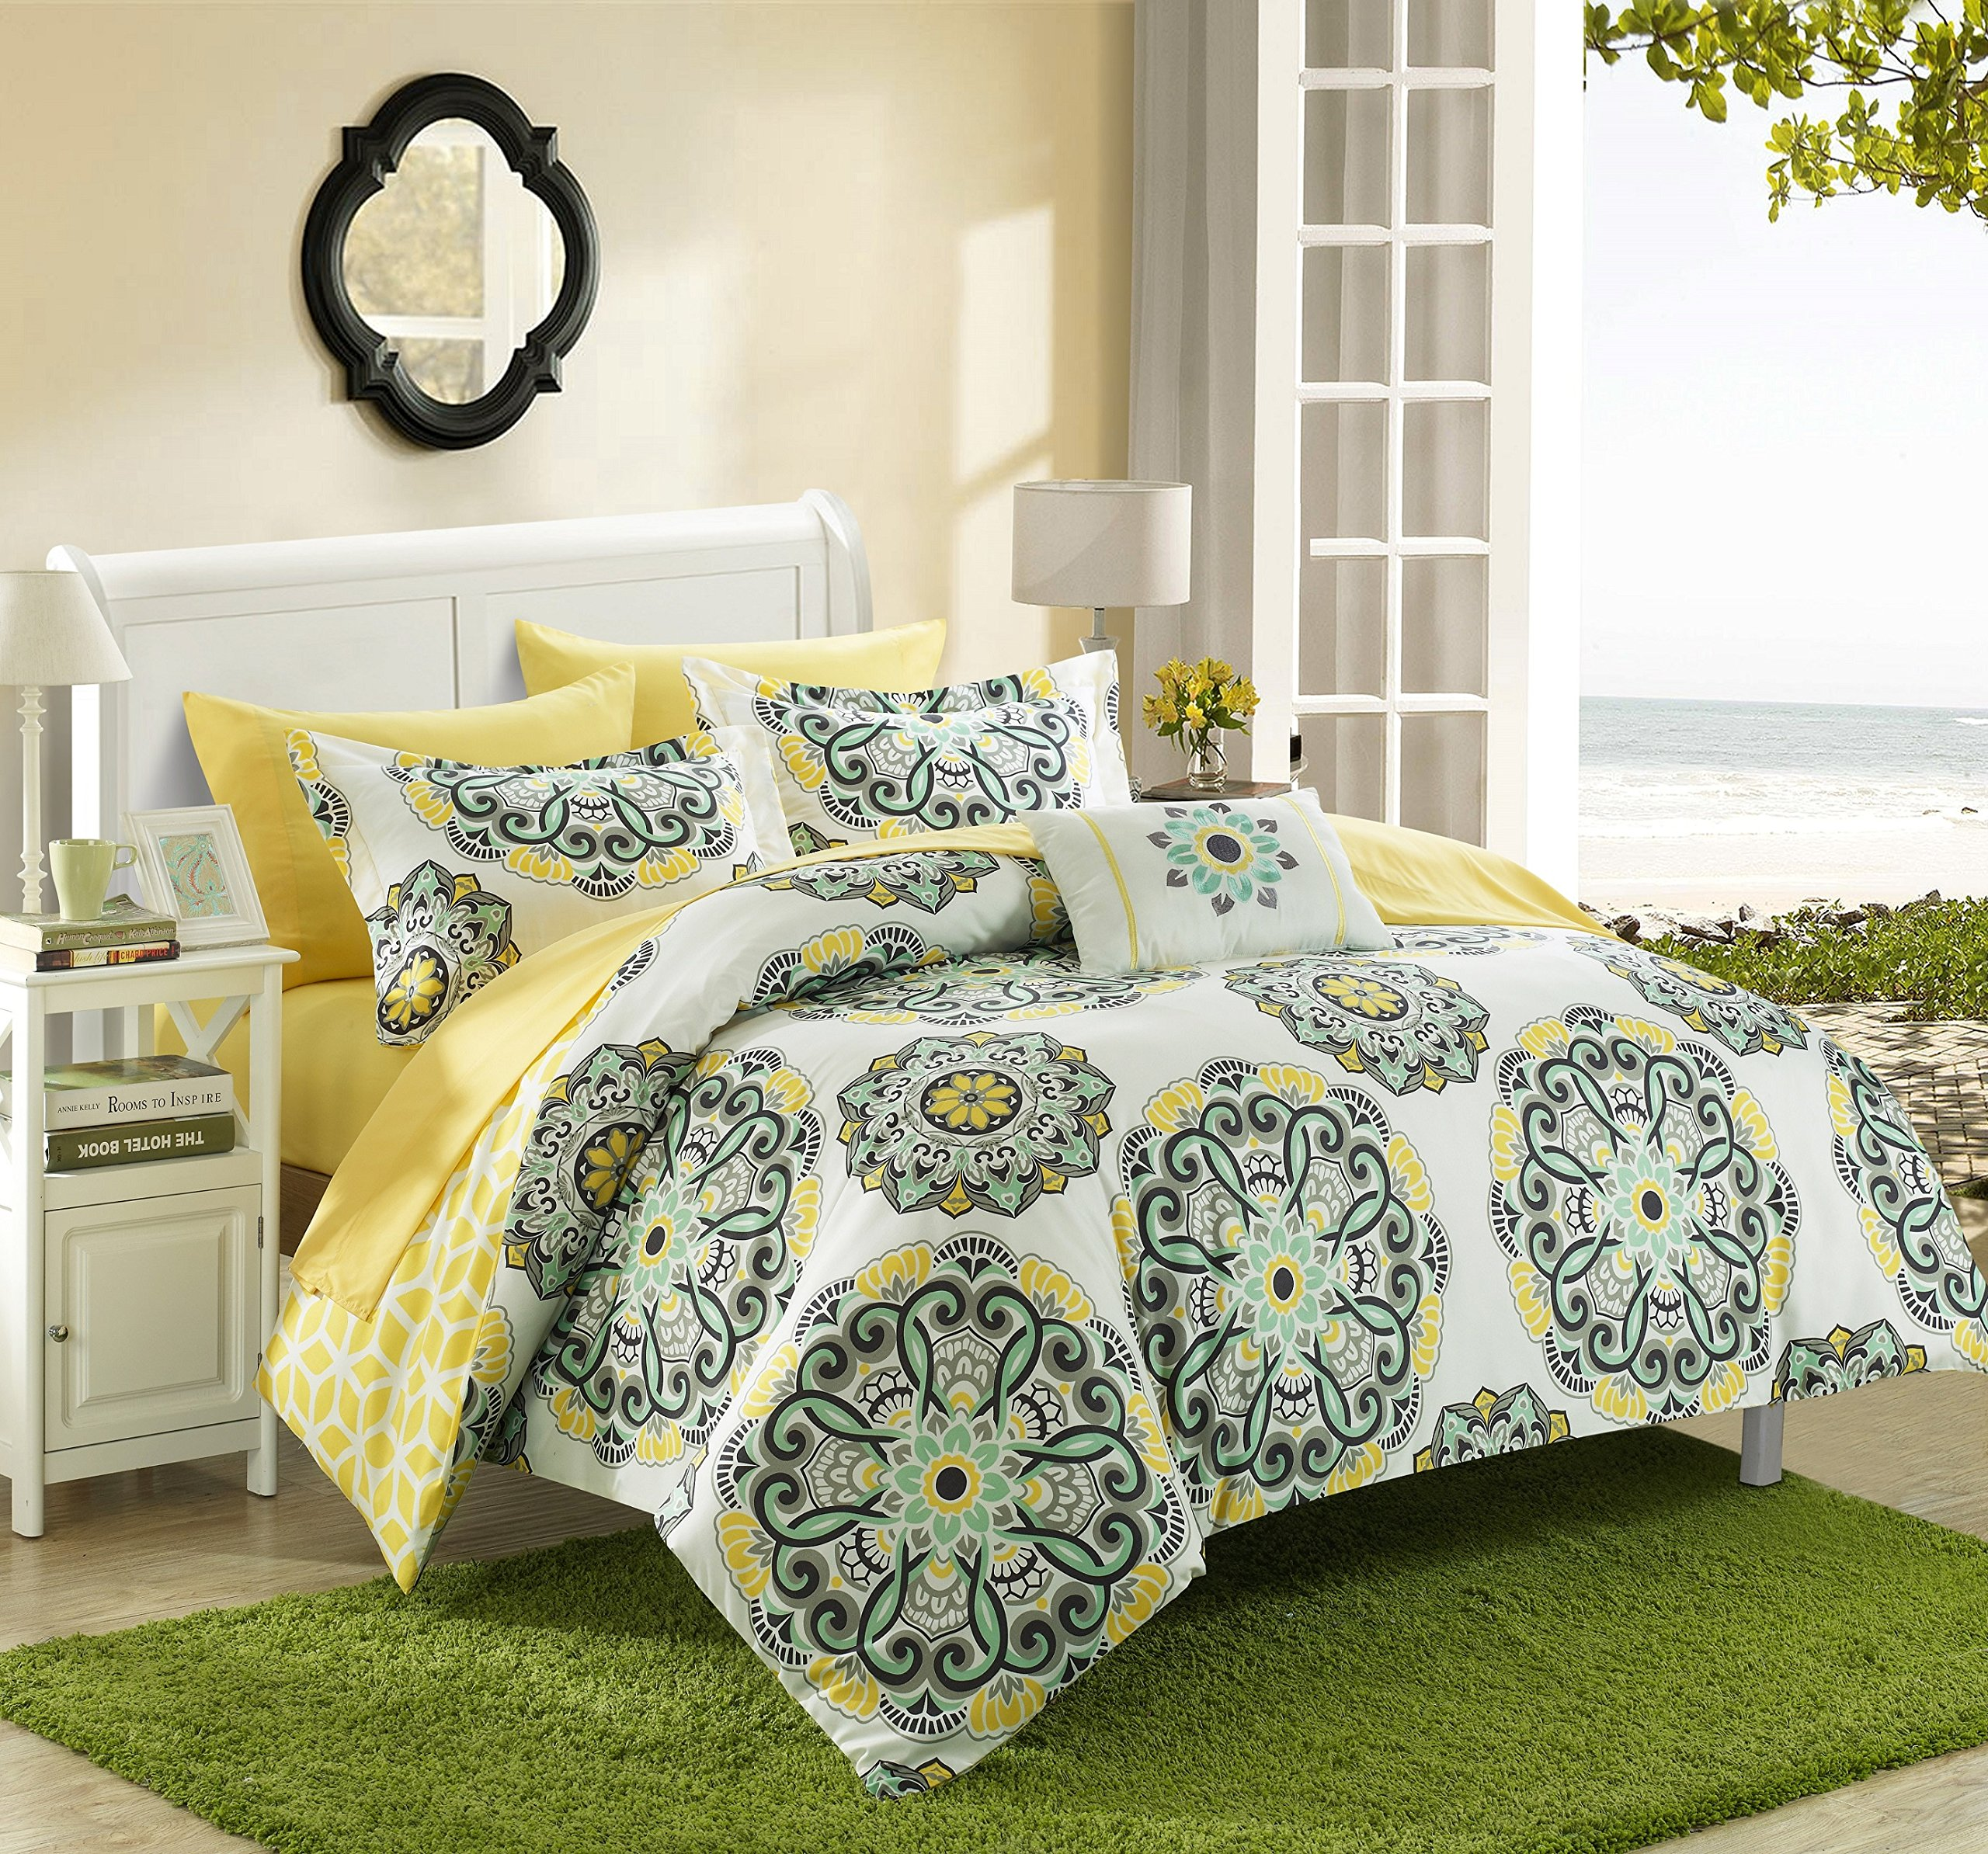 Chic Home Barcelona 6 Piece Reversible Comforter Set Super Soft Microfiber Large Printed Medallion Design with Geometric Patterned Backing Bed in a Bag with Sheet Set and Decorative Pillows Shams, Twin Yellow